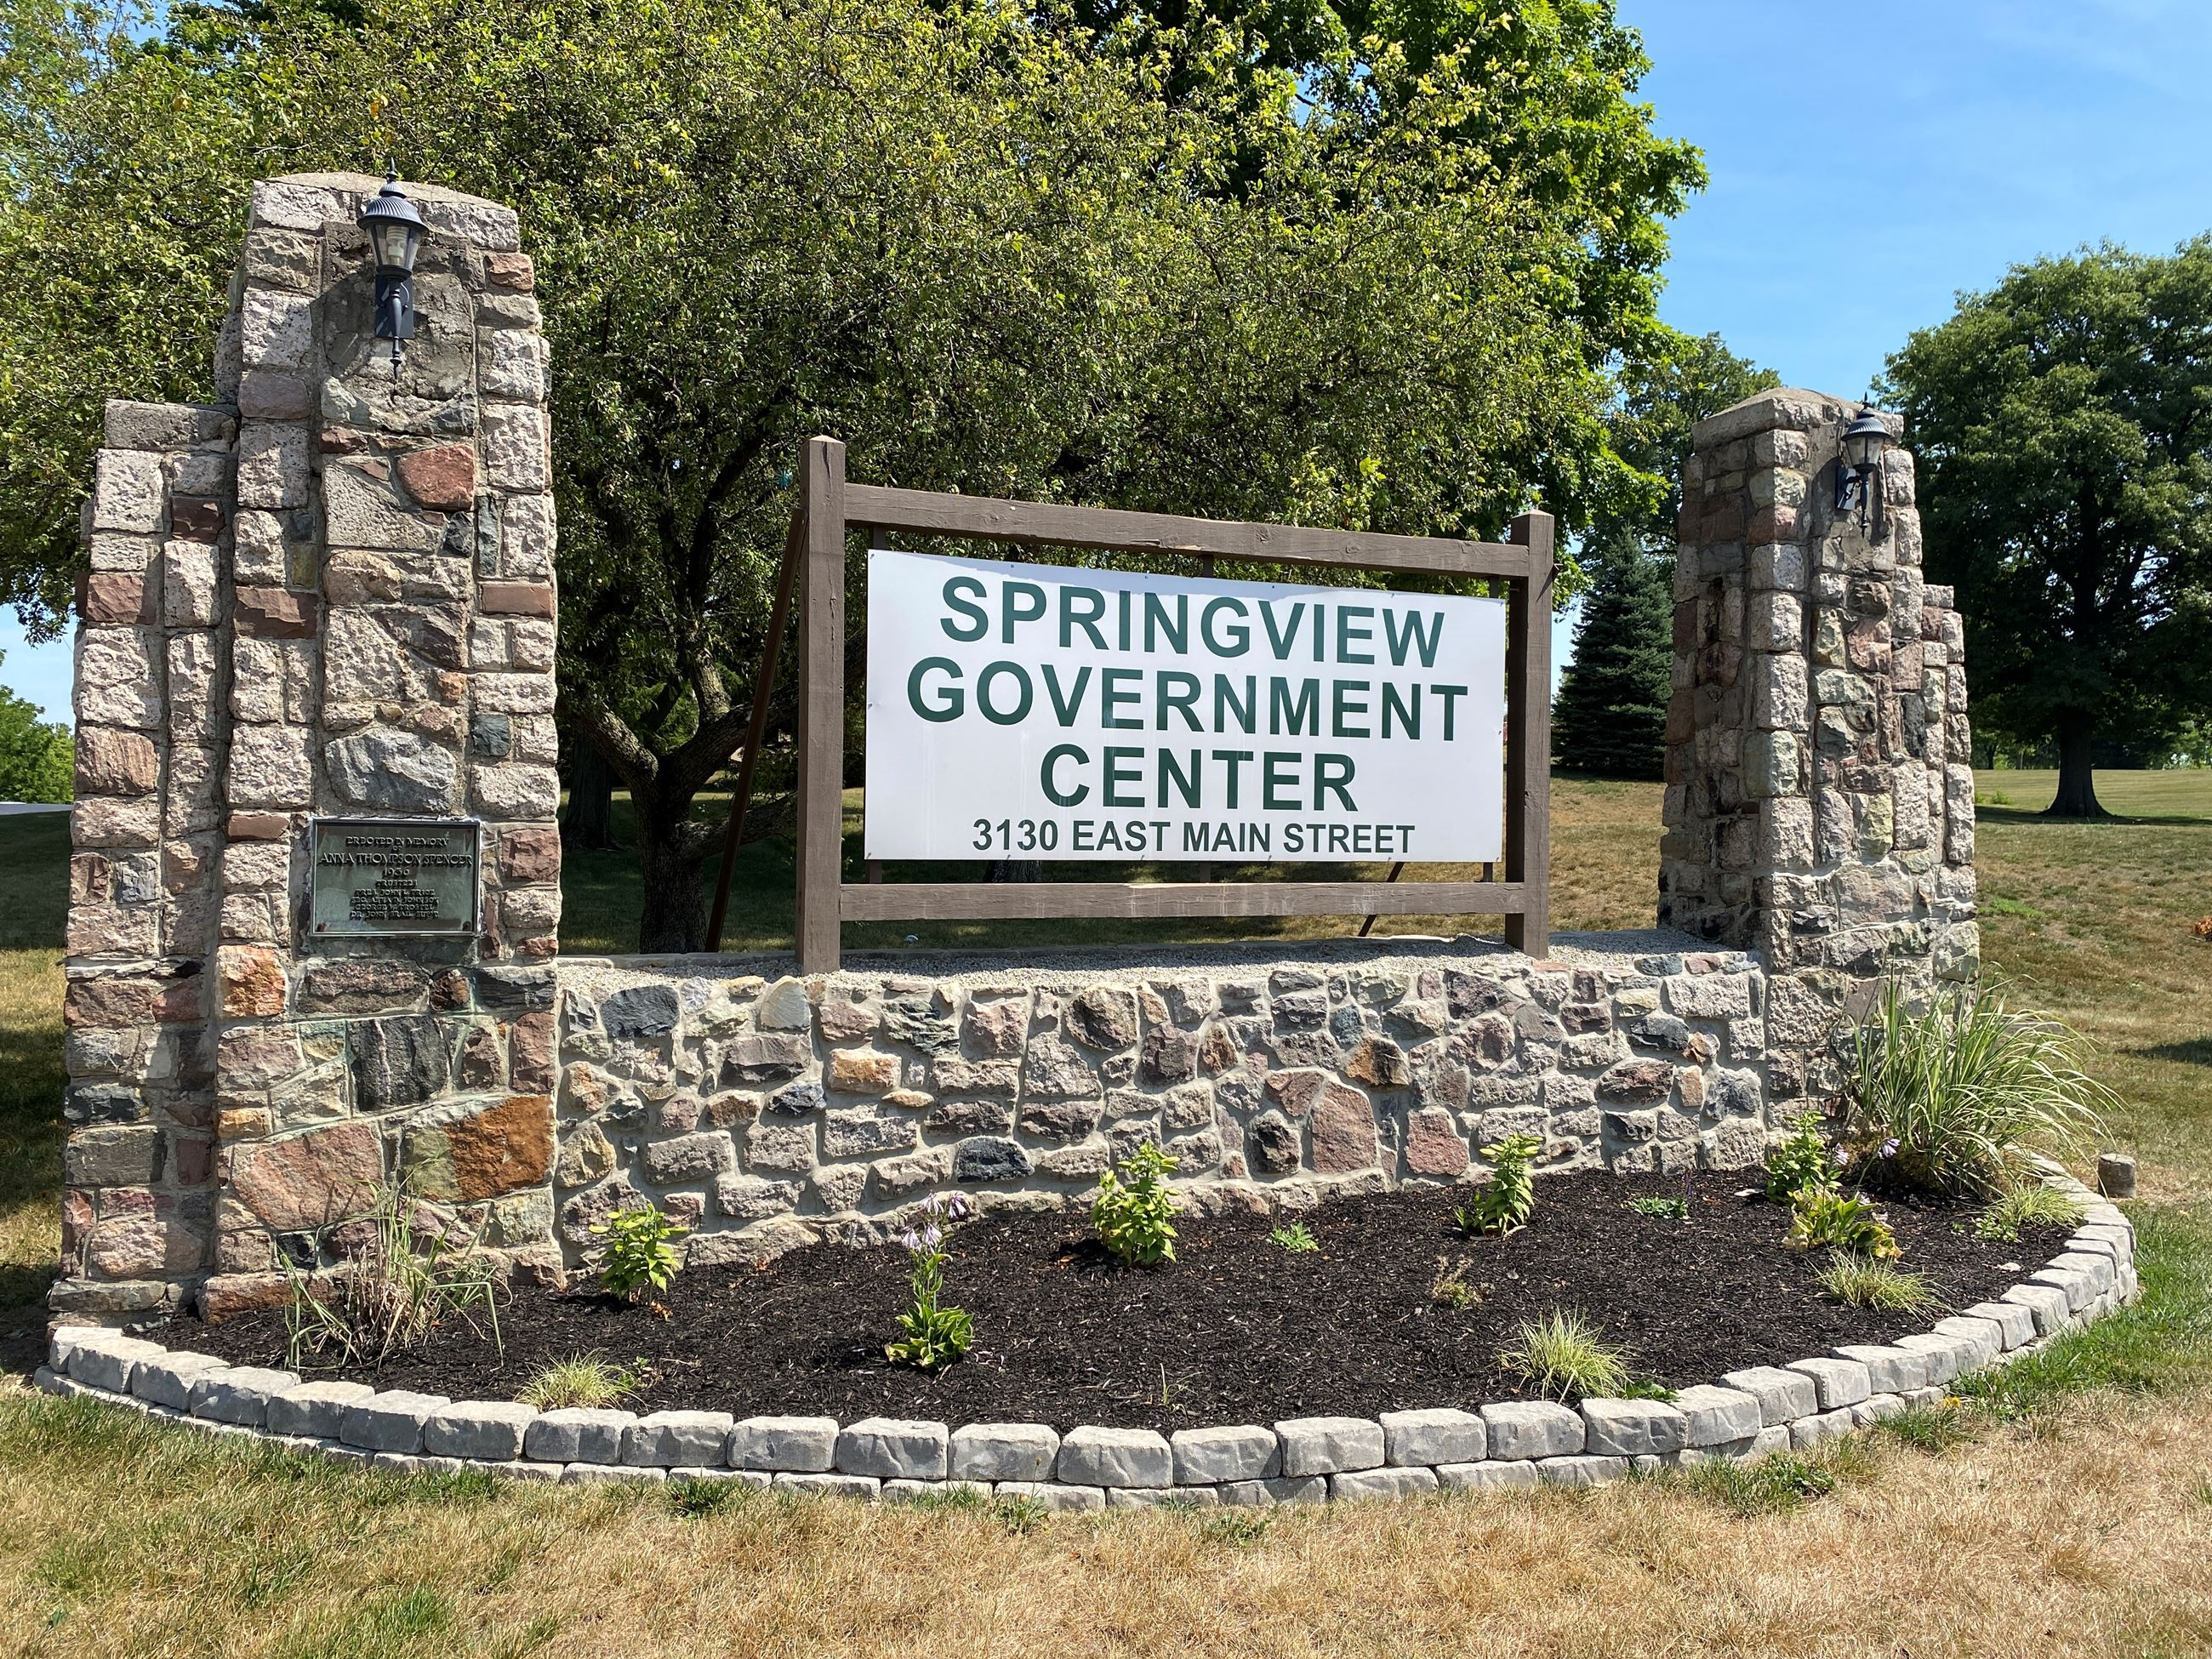 The sign at the Springview Government Center.